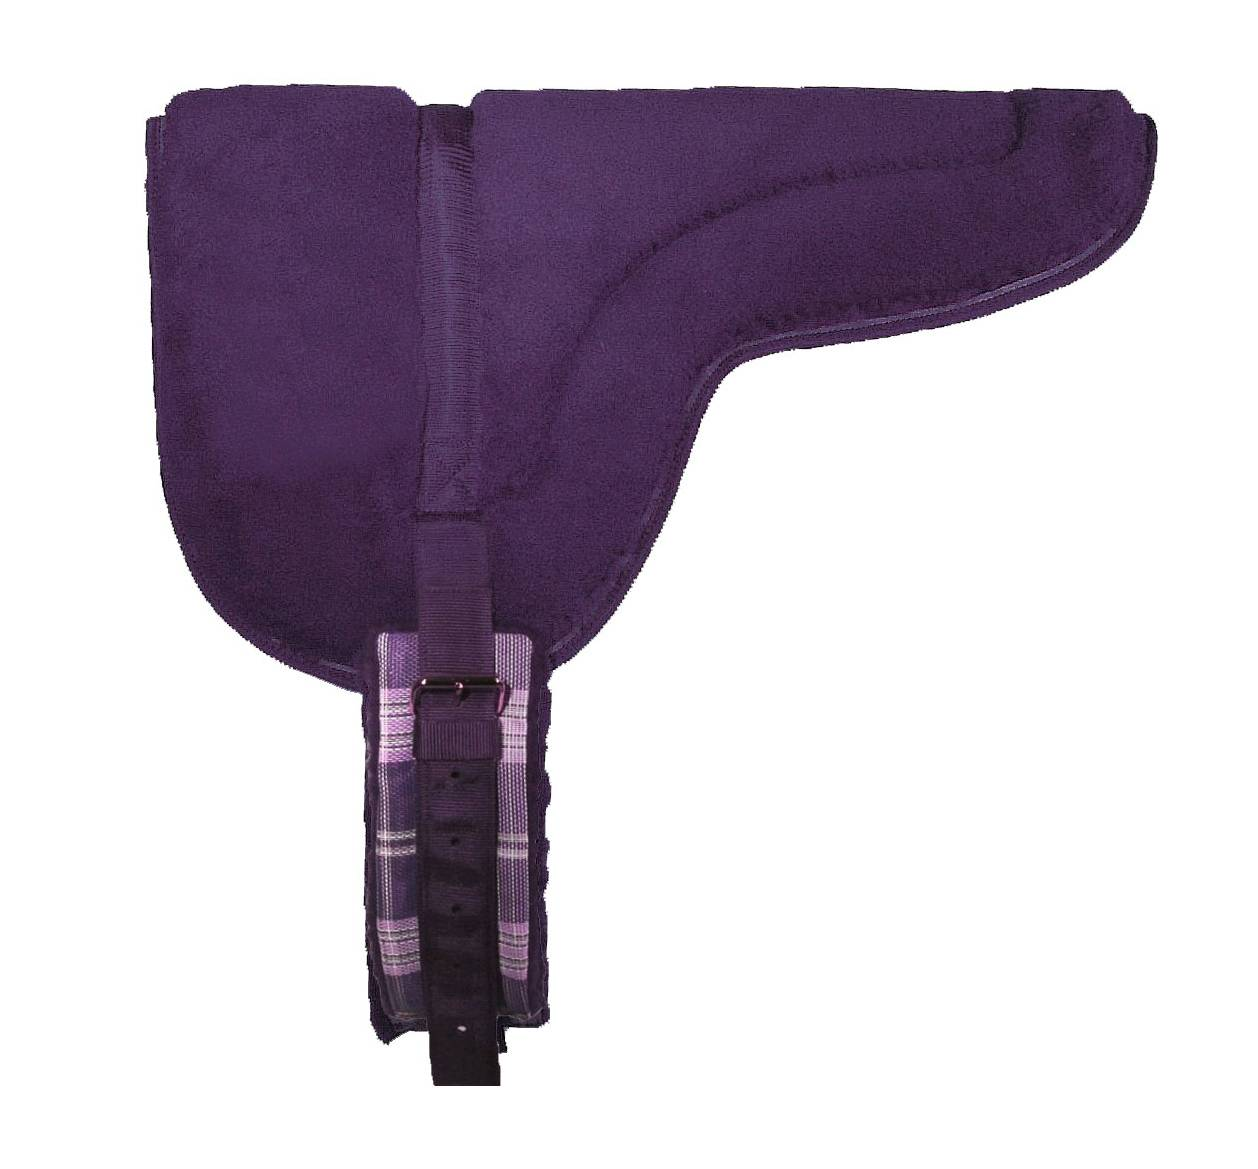 Kensington Fleece Bareback Pad